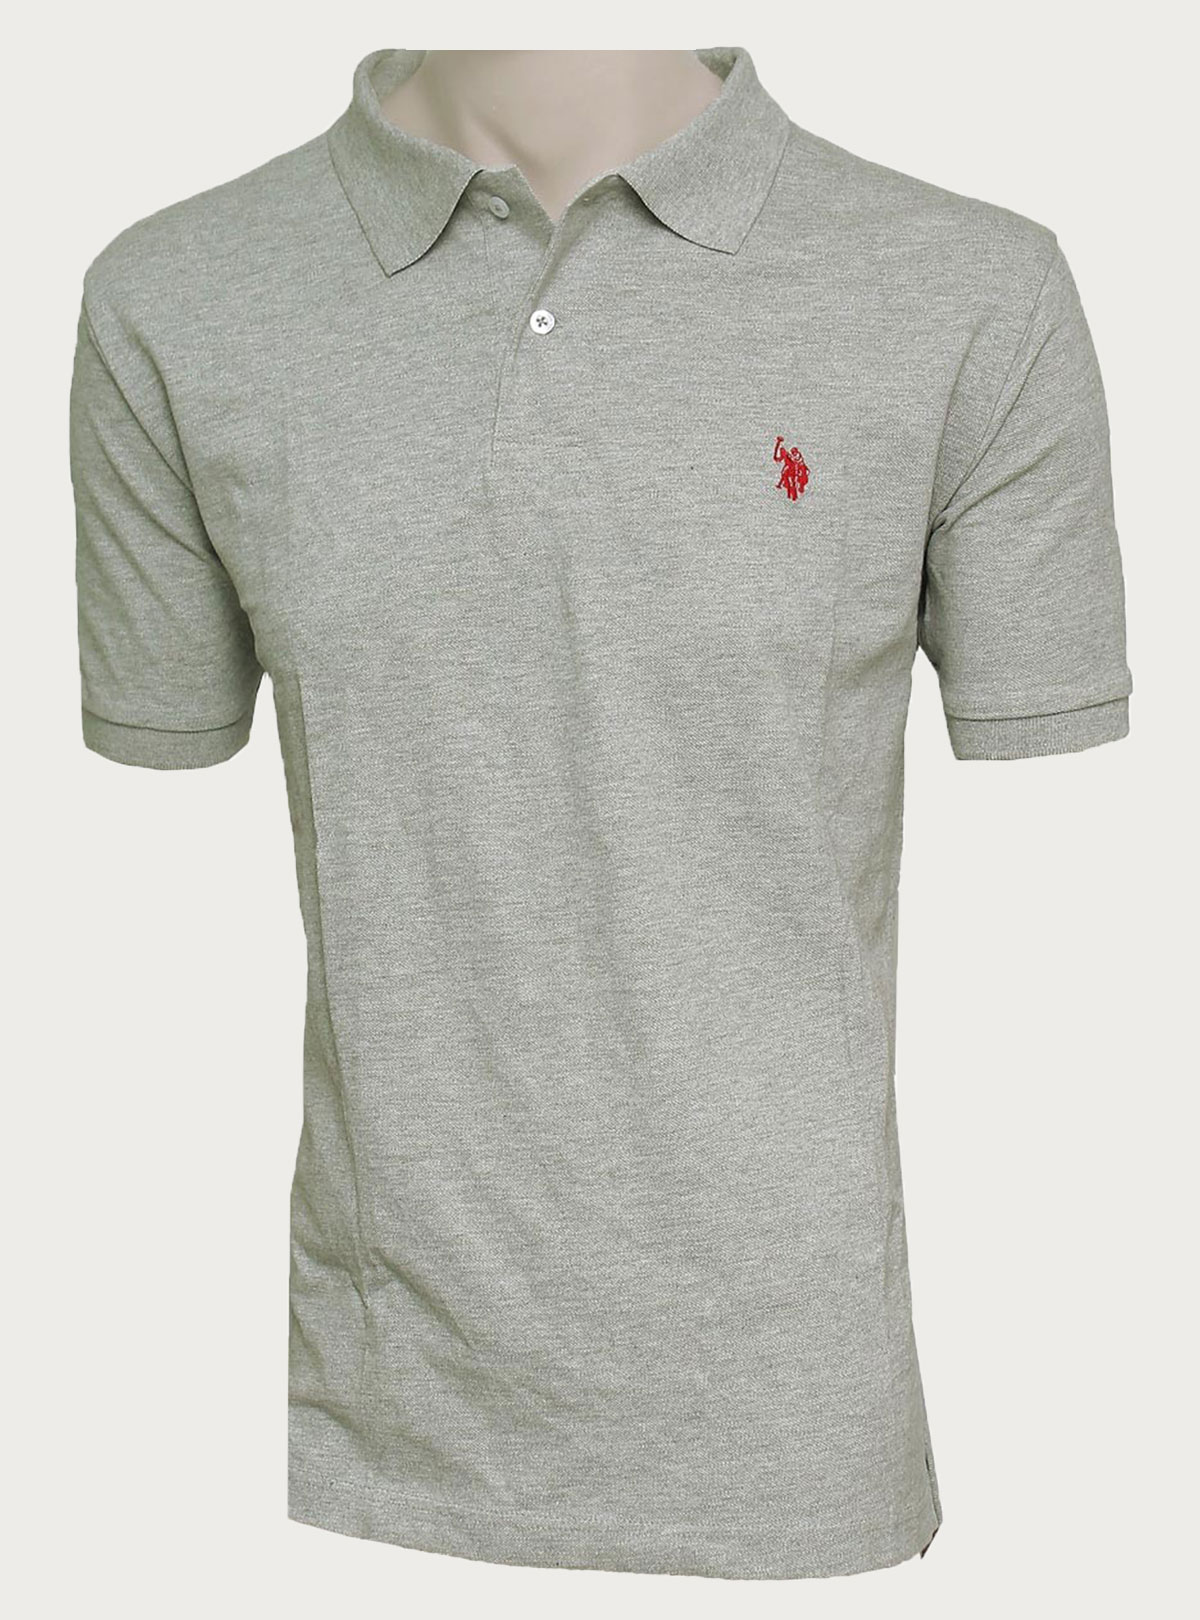 POLO T- Shirt By-U.S Polo Assn